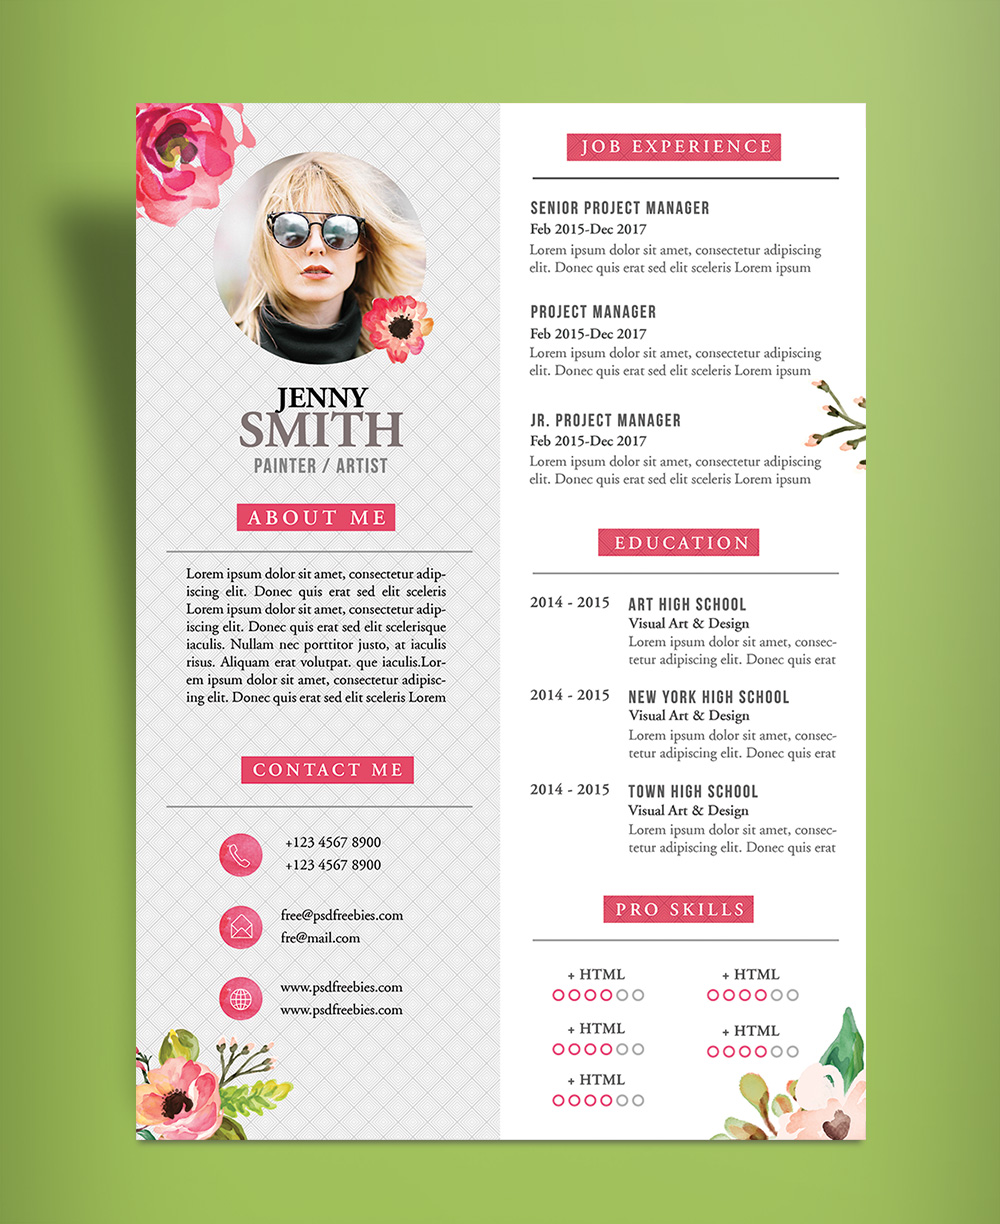 Free Artistic Resume CV Design Template PSD File Good